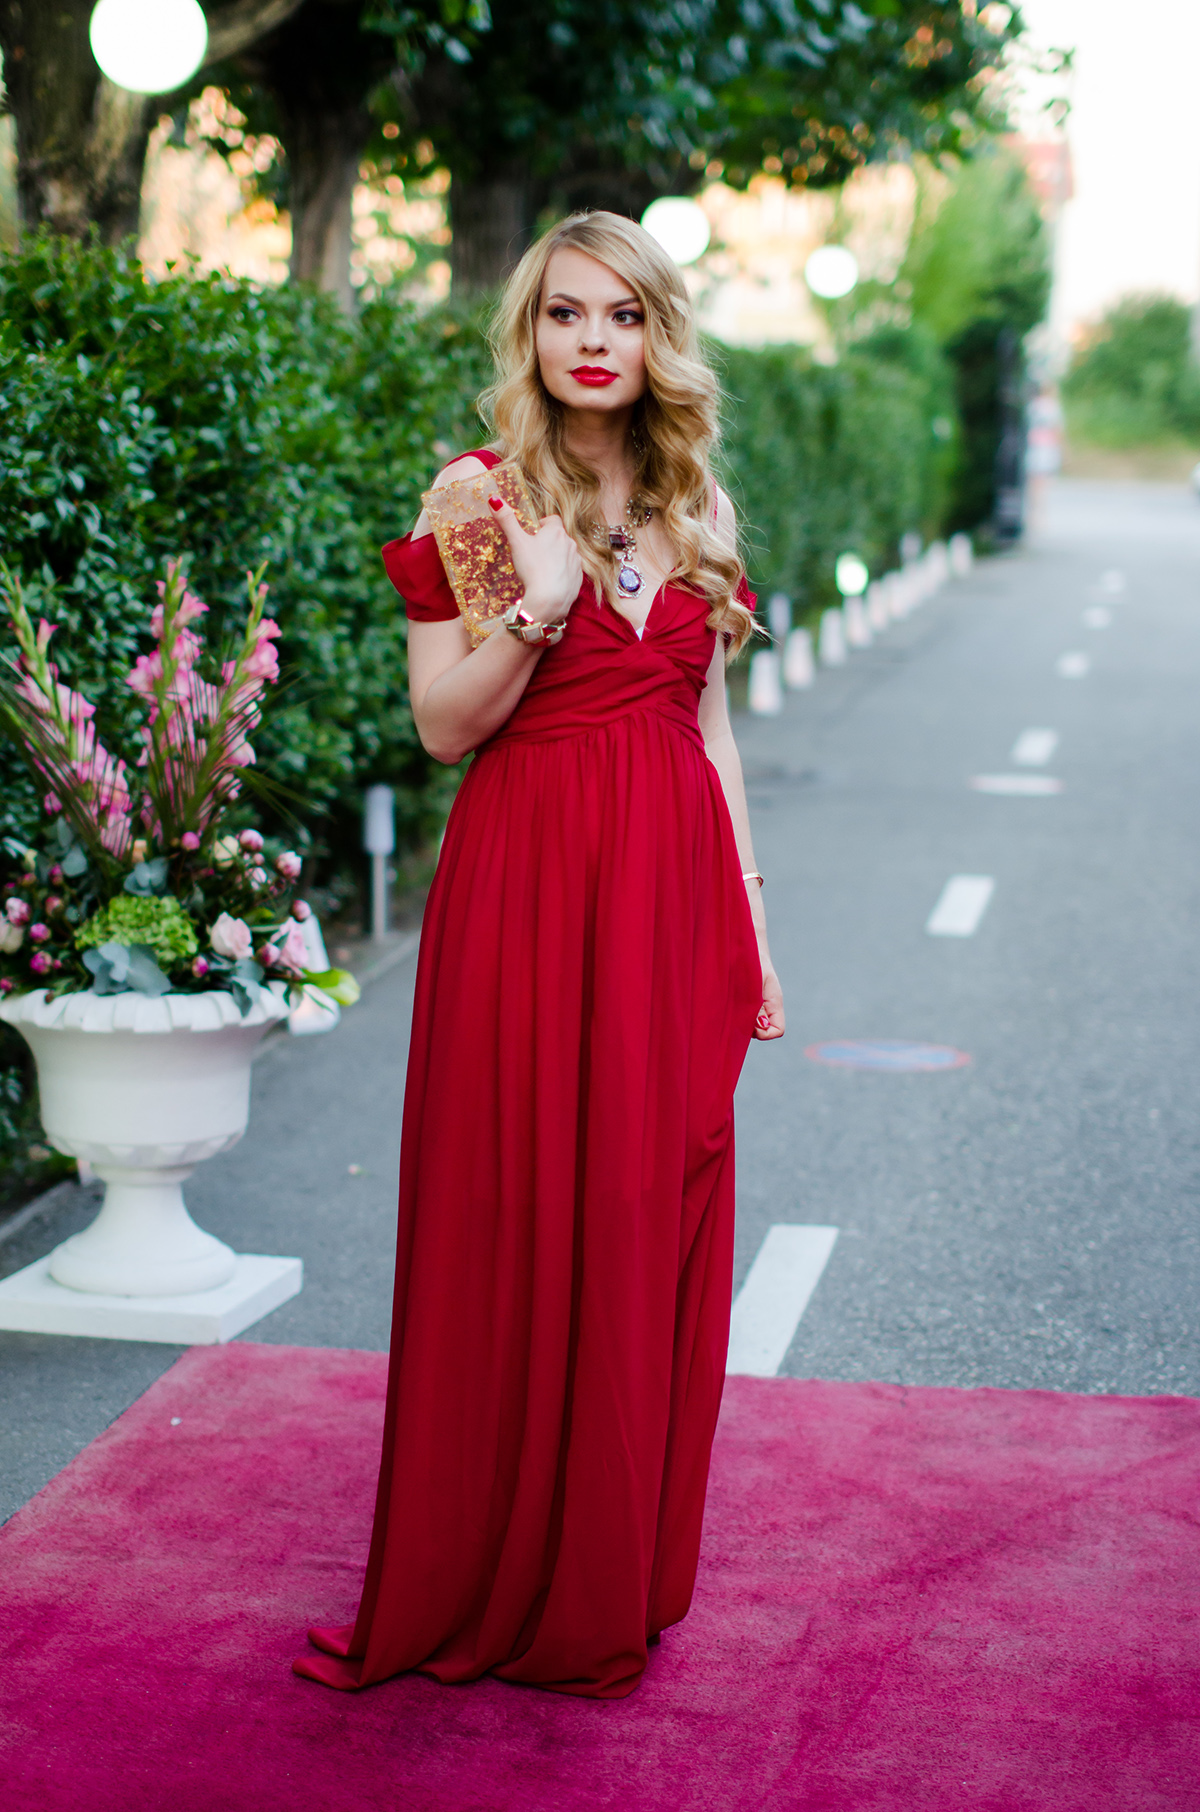 Wedding outfit the red maxi dress pink wishpink wish shein red maxi dress zara statement necklace wedding ombrellifo Images